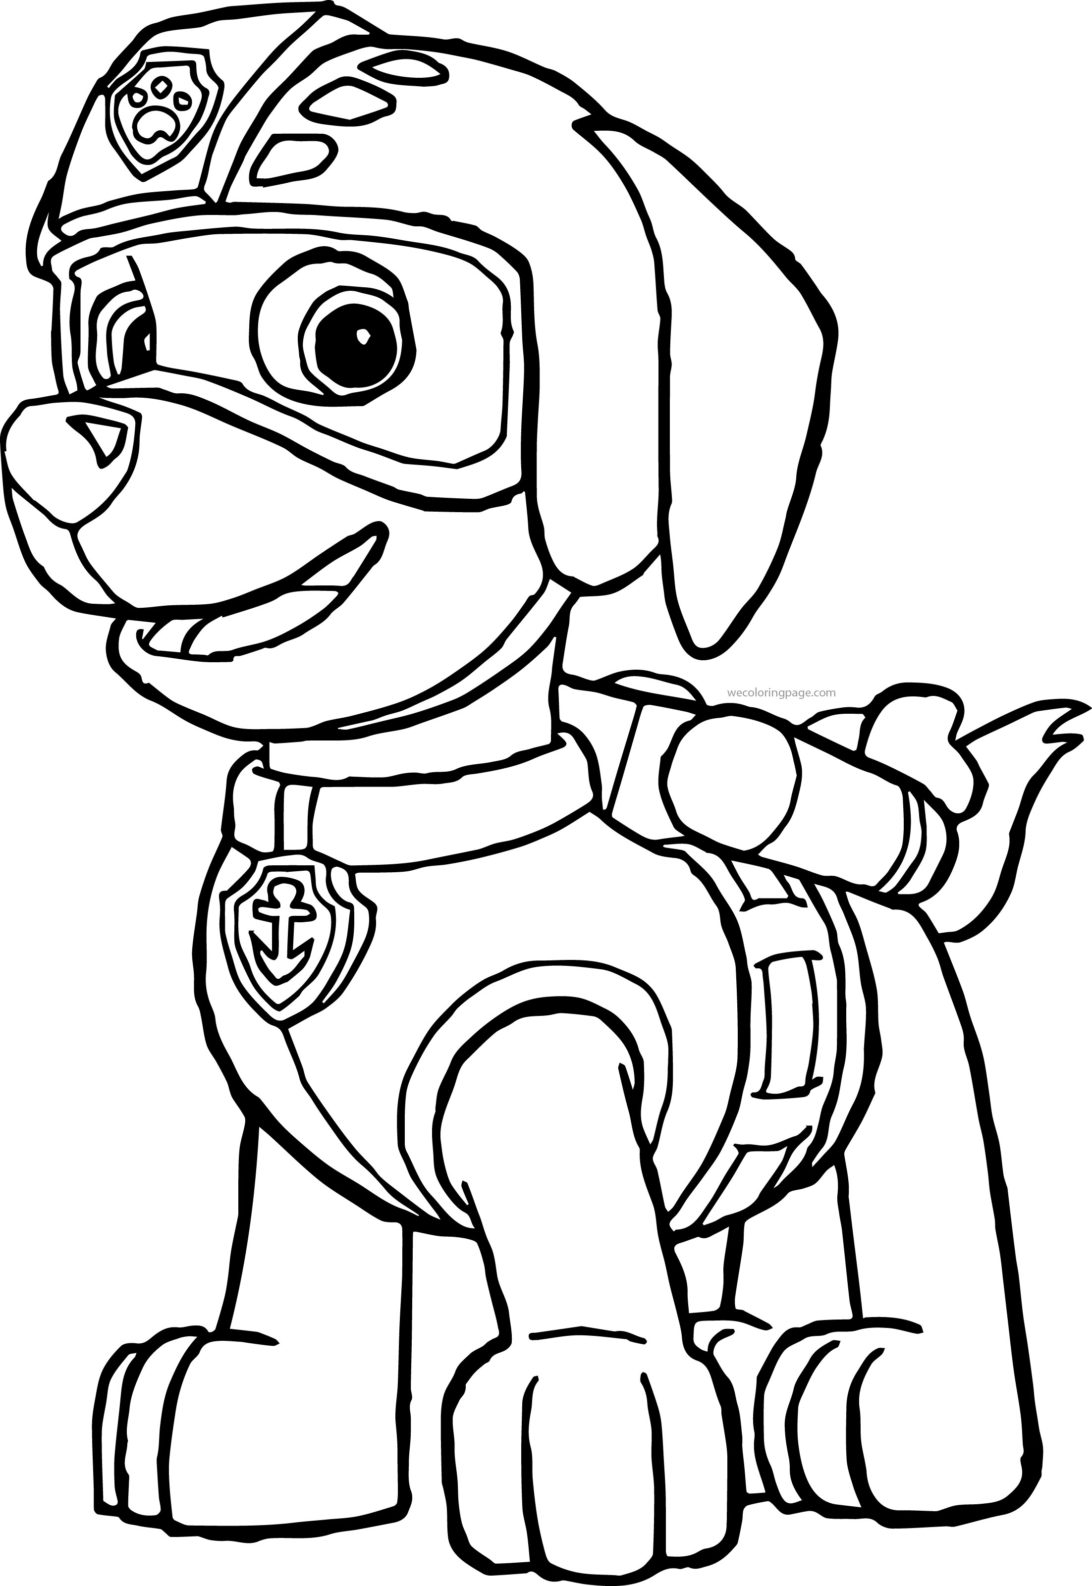 paw patrol chase coloring 25 excellent picture of chase paw patrol coloring page paw patrol chase coloring